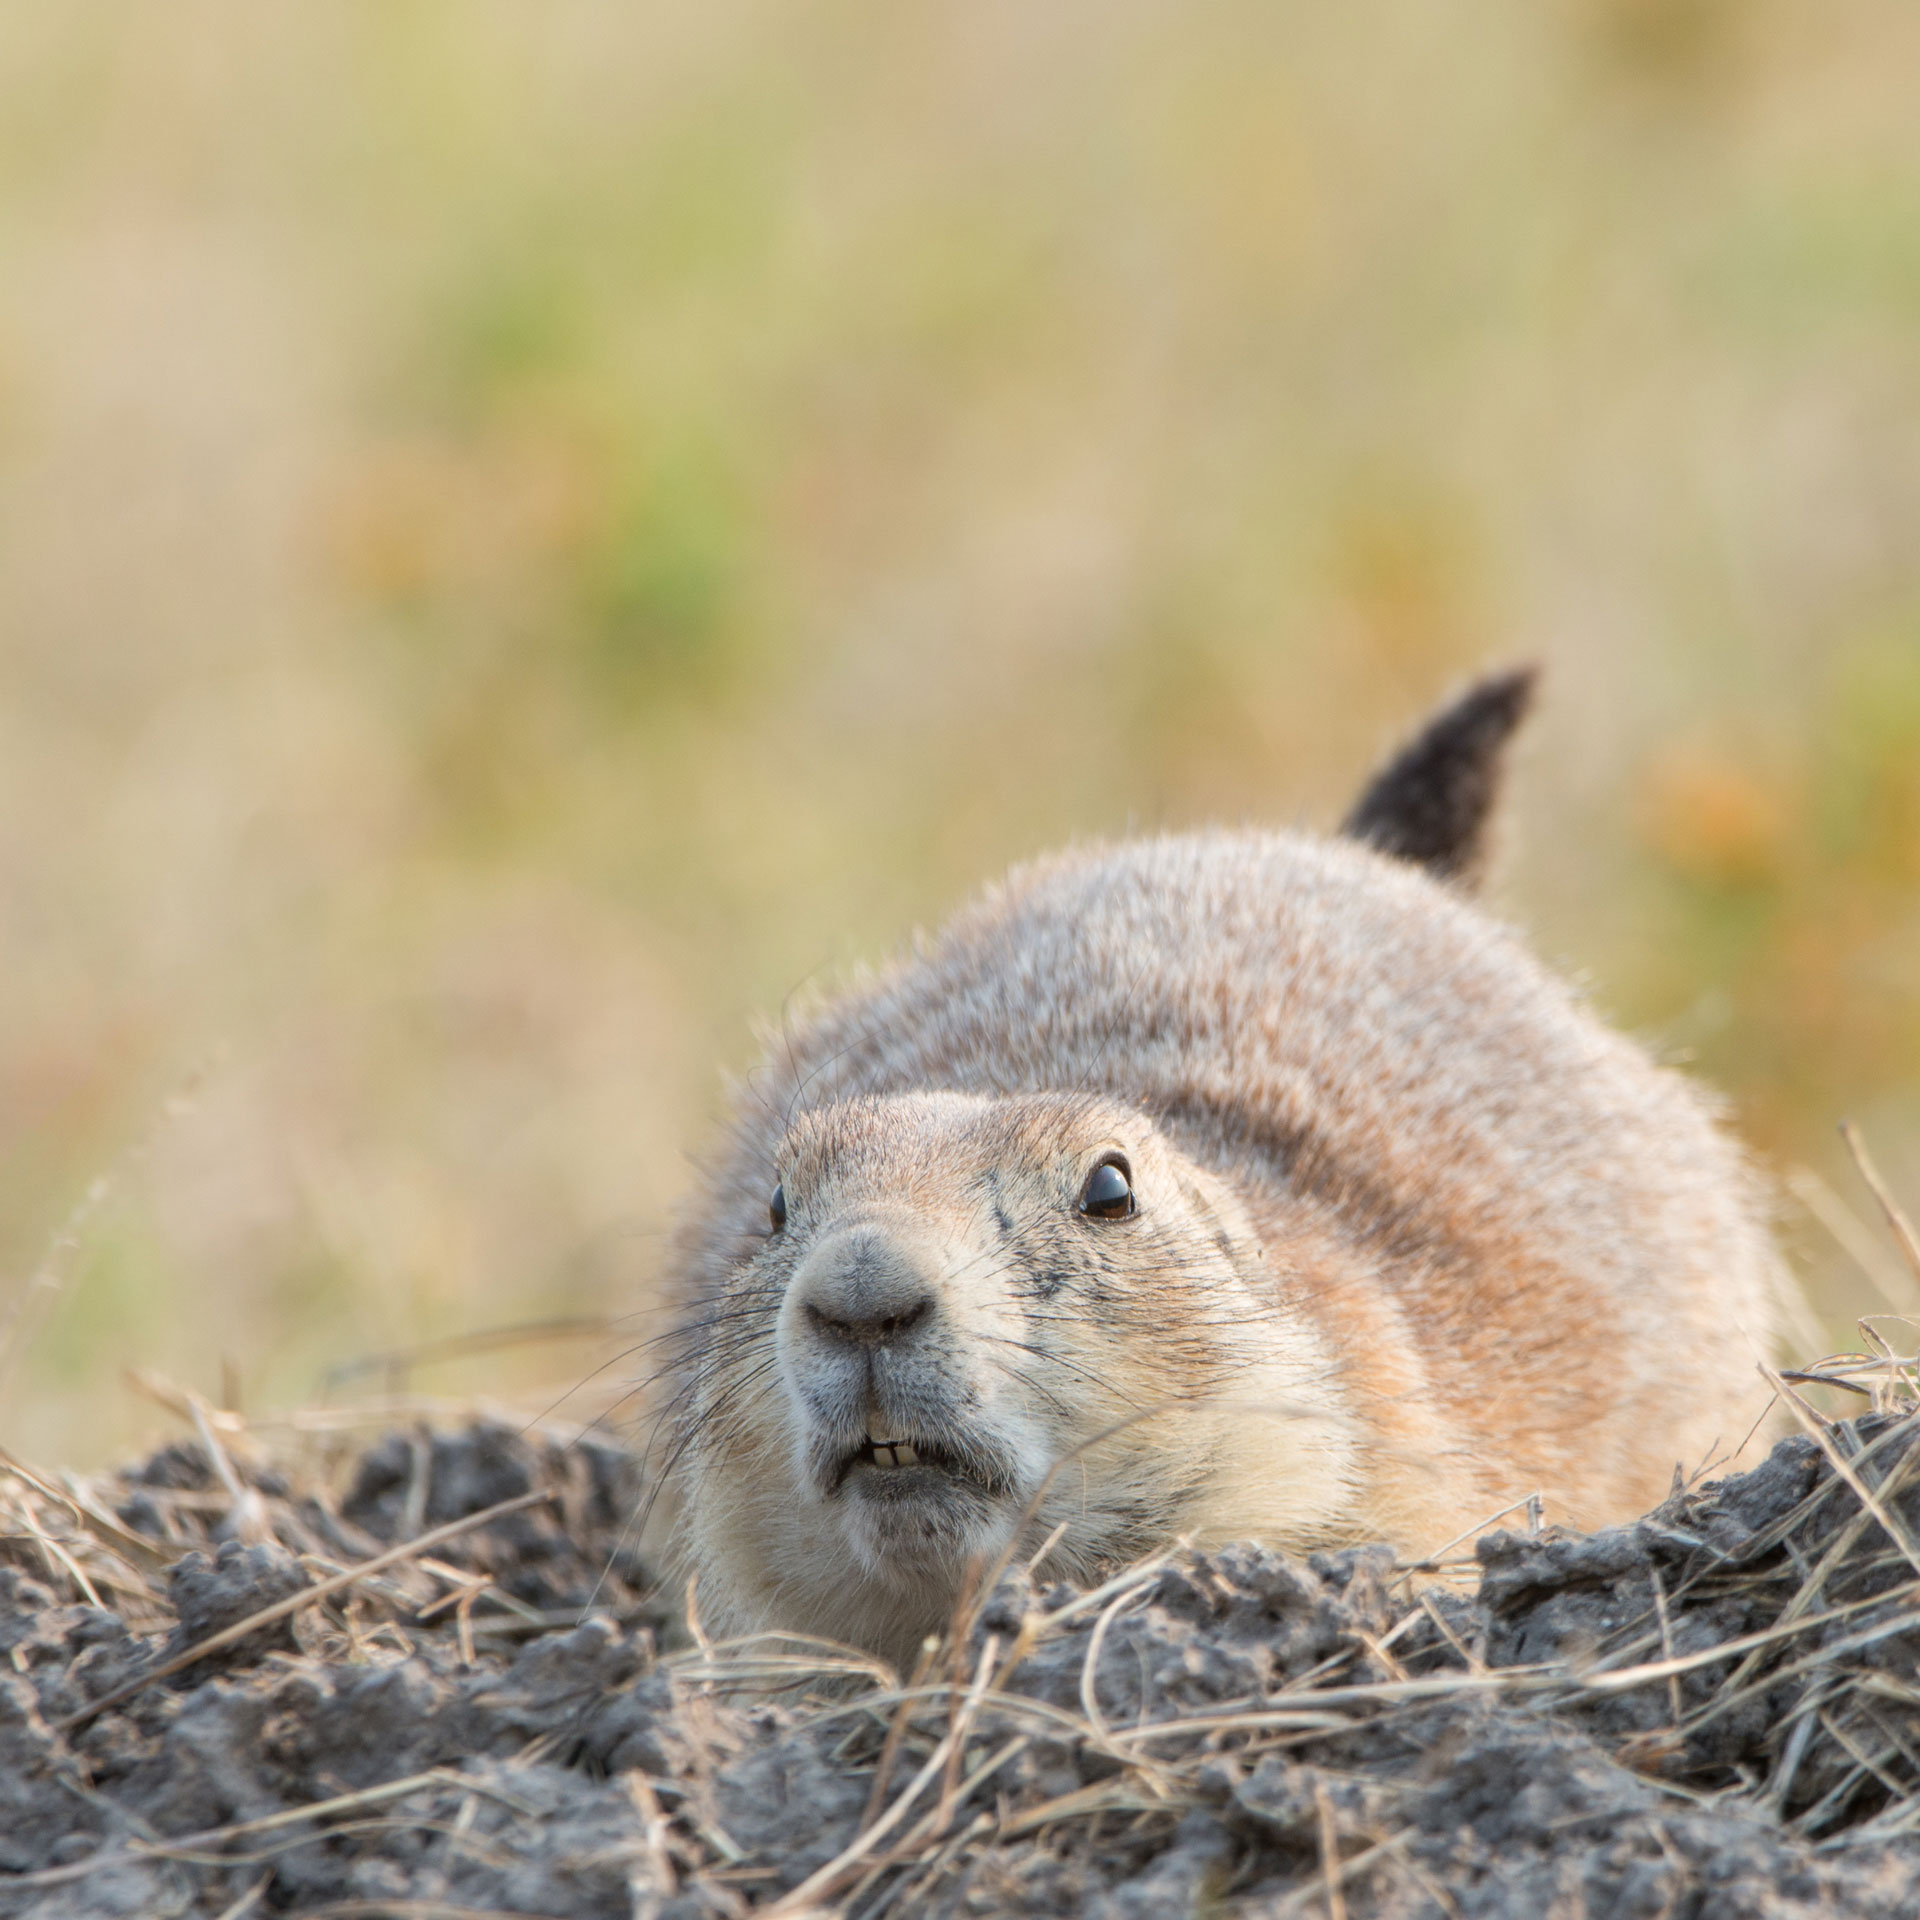 Prairie Dog ( Cynomys ludovicianus ) prepping to retreat into a burrow - Badlands NP, SD  Nikon D7200 + Nikon 200-400mm f4.0 VR